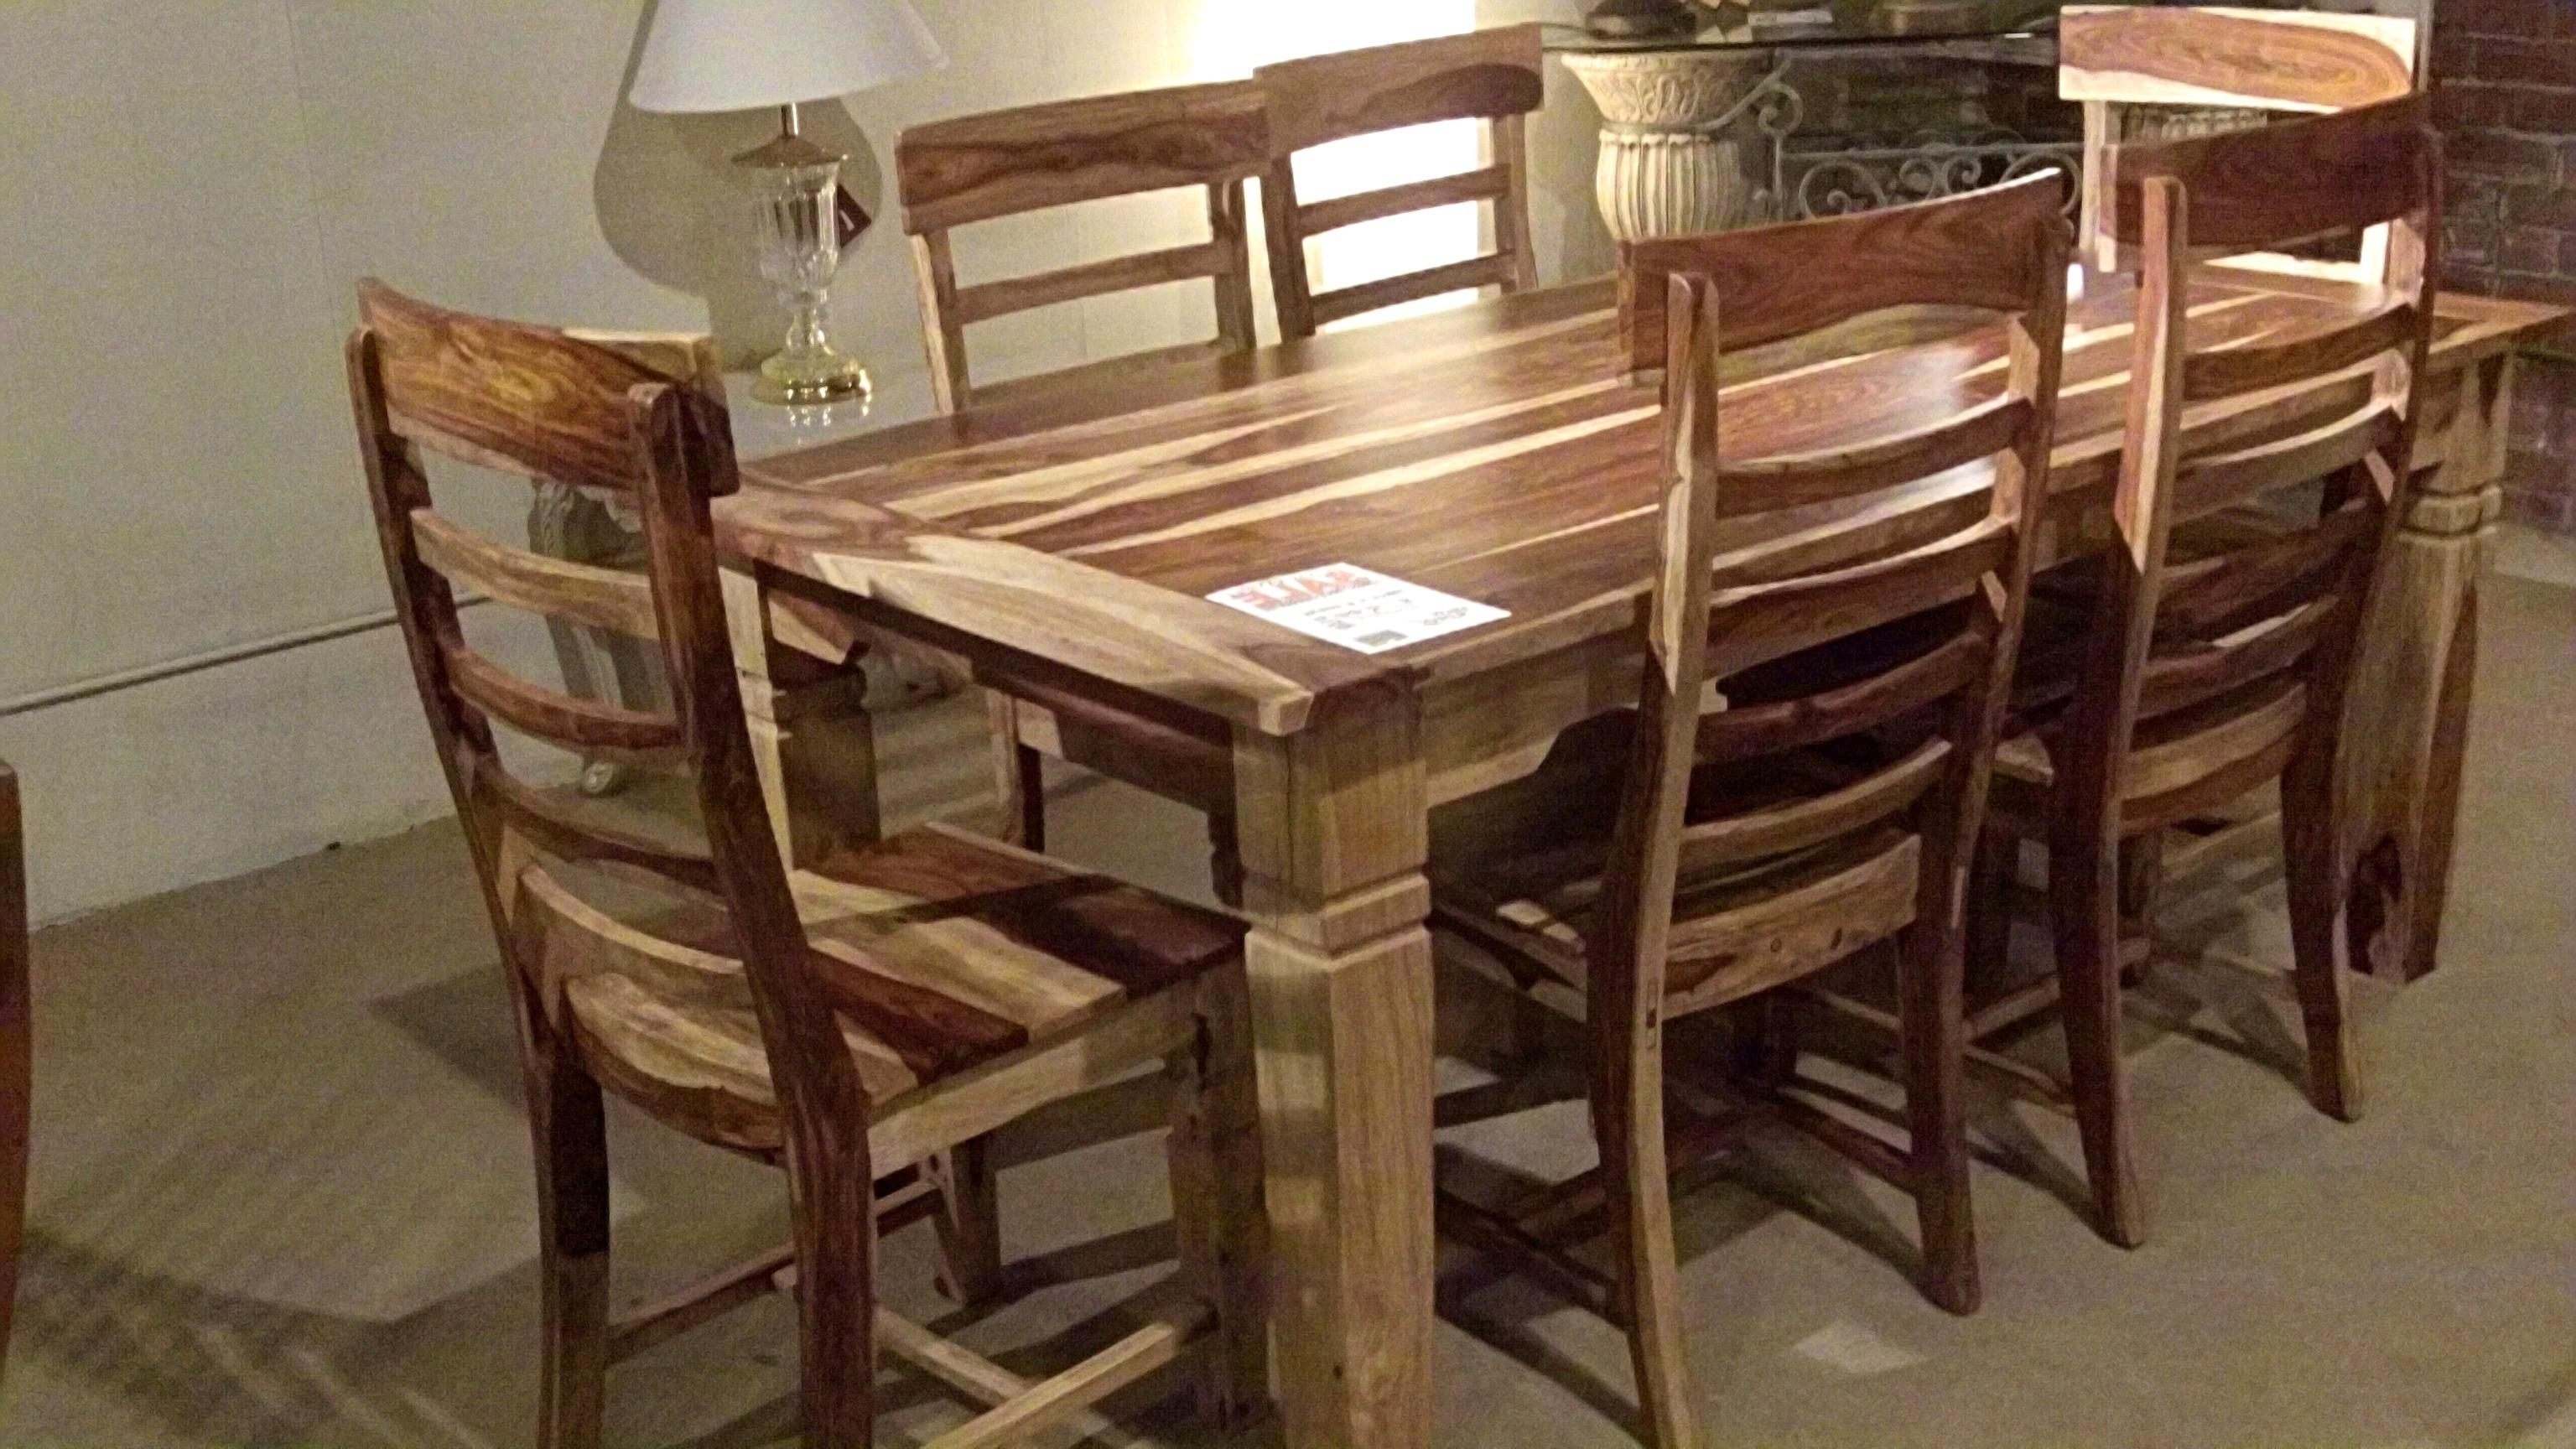 Phenomenal Sheesham Wood Dining Table Cm Within Most Up To Date Sheesham Dining Tables And Chairs (View 25 of 25)